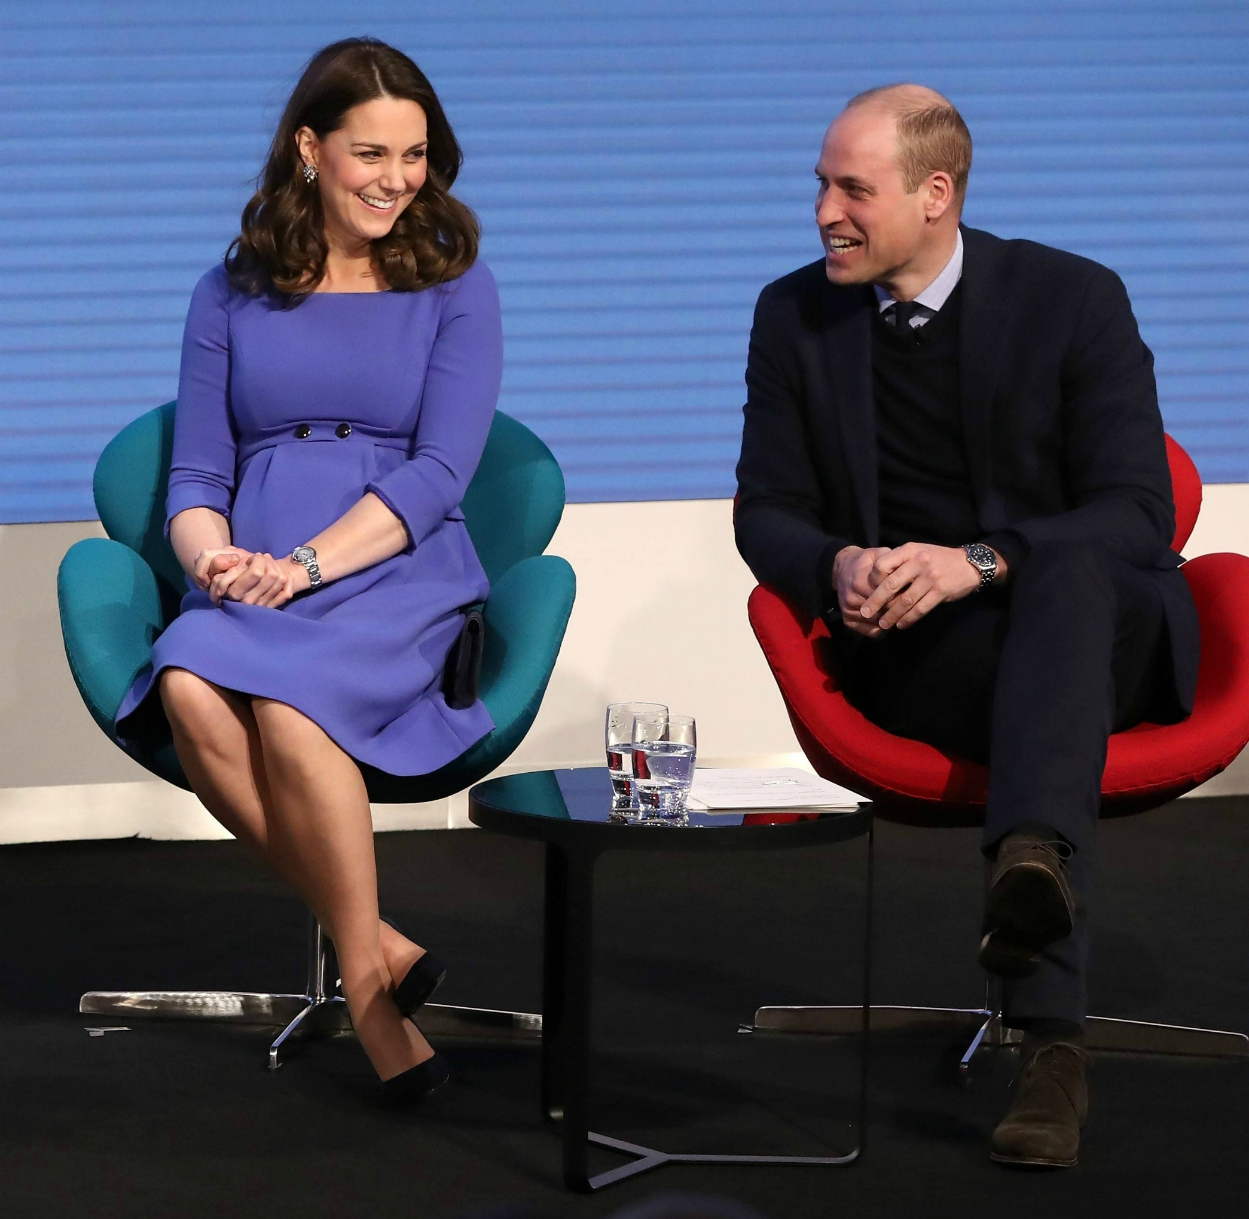 Seraphine, the maternity fashion brand beloved by Kate Middleton, has partnered with Macy's for two shop-in-shops in NYC and California.